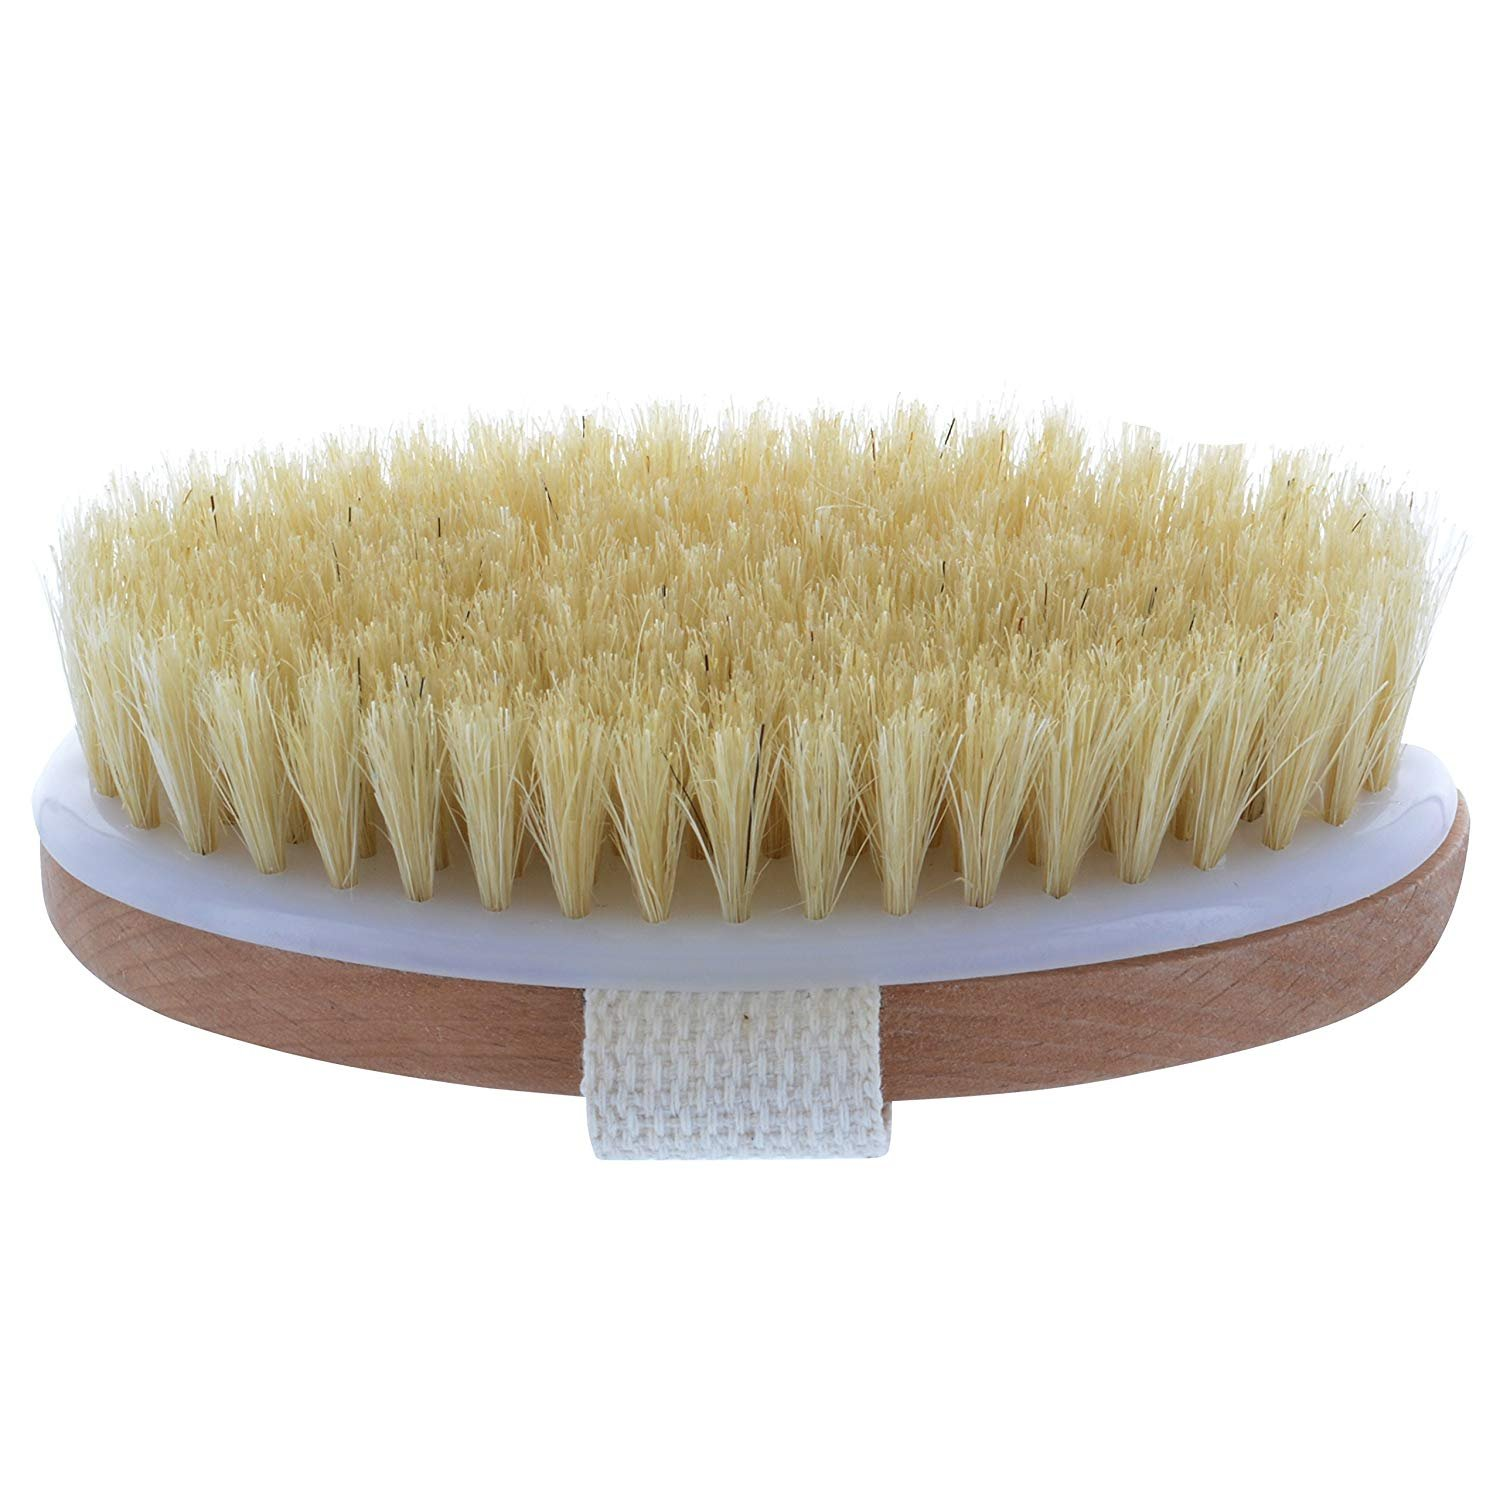 BOMIEN Dry Skin Body Brush -Wooden and Natural Bristle Shower Bath Brush -Cellulite Exfoliating Shower & Bath Massage and Lymphatic Detox Dry Brushing